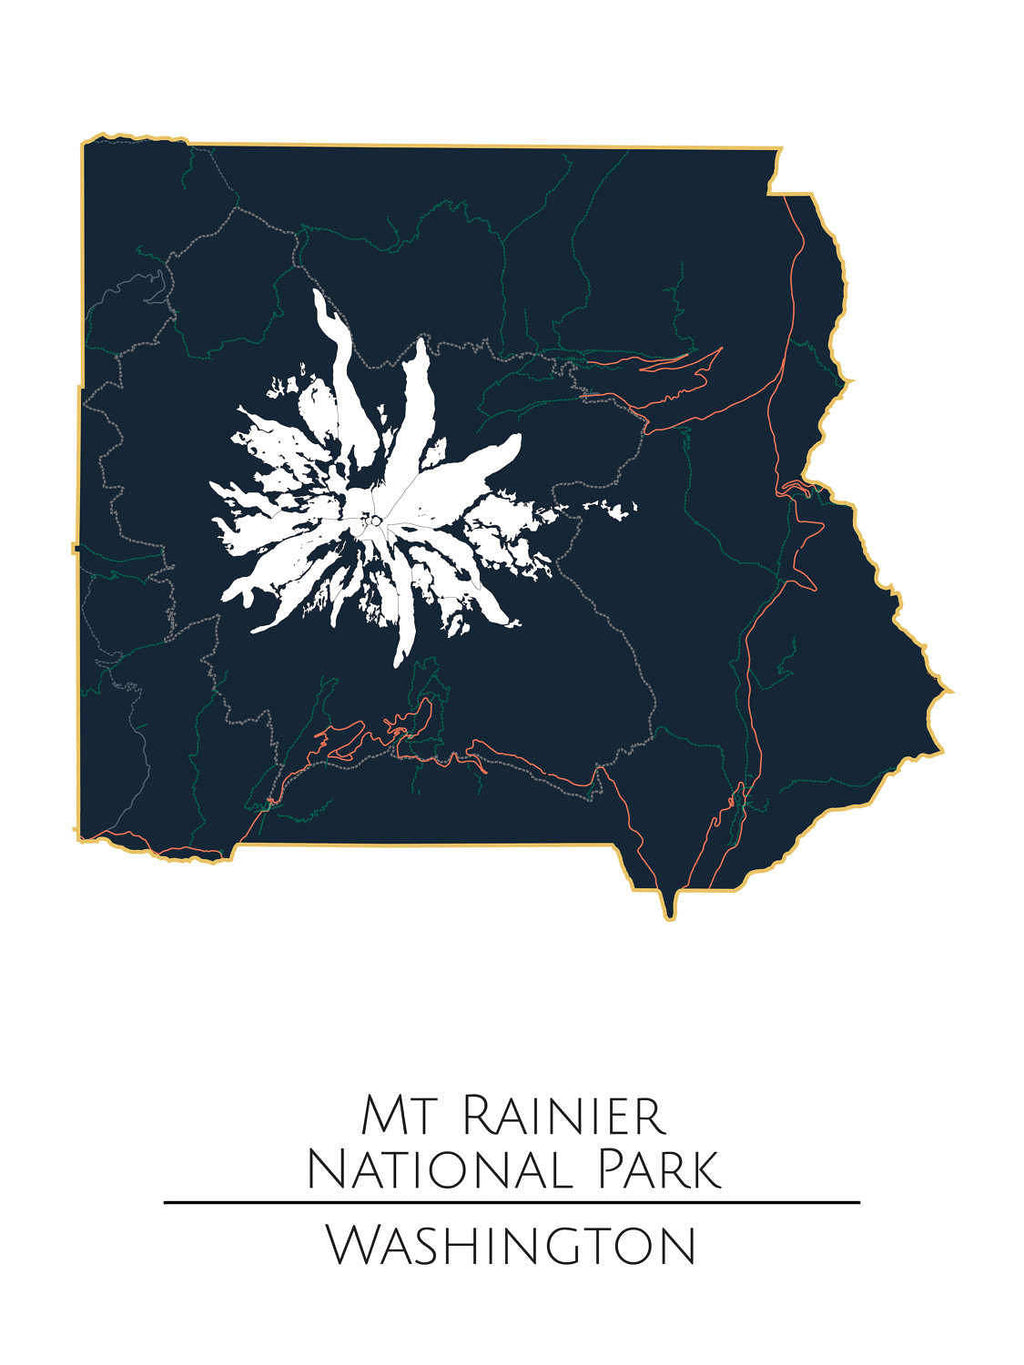 Mt Rainier National Park, National Park Poster, Minimalist Art, National Park Map, National Parks, Mt Rainy, Map Art, National Park Print - ParMar Media